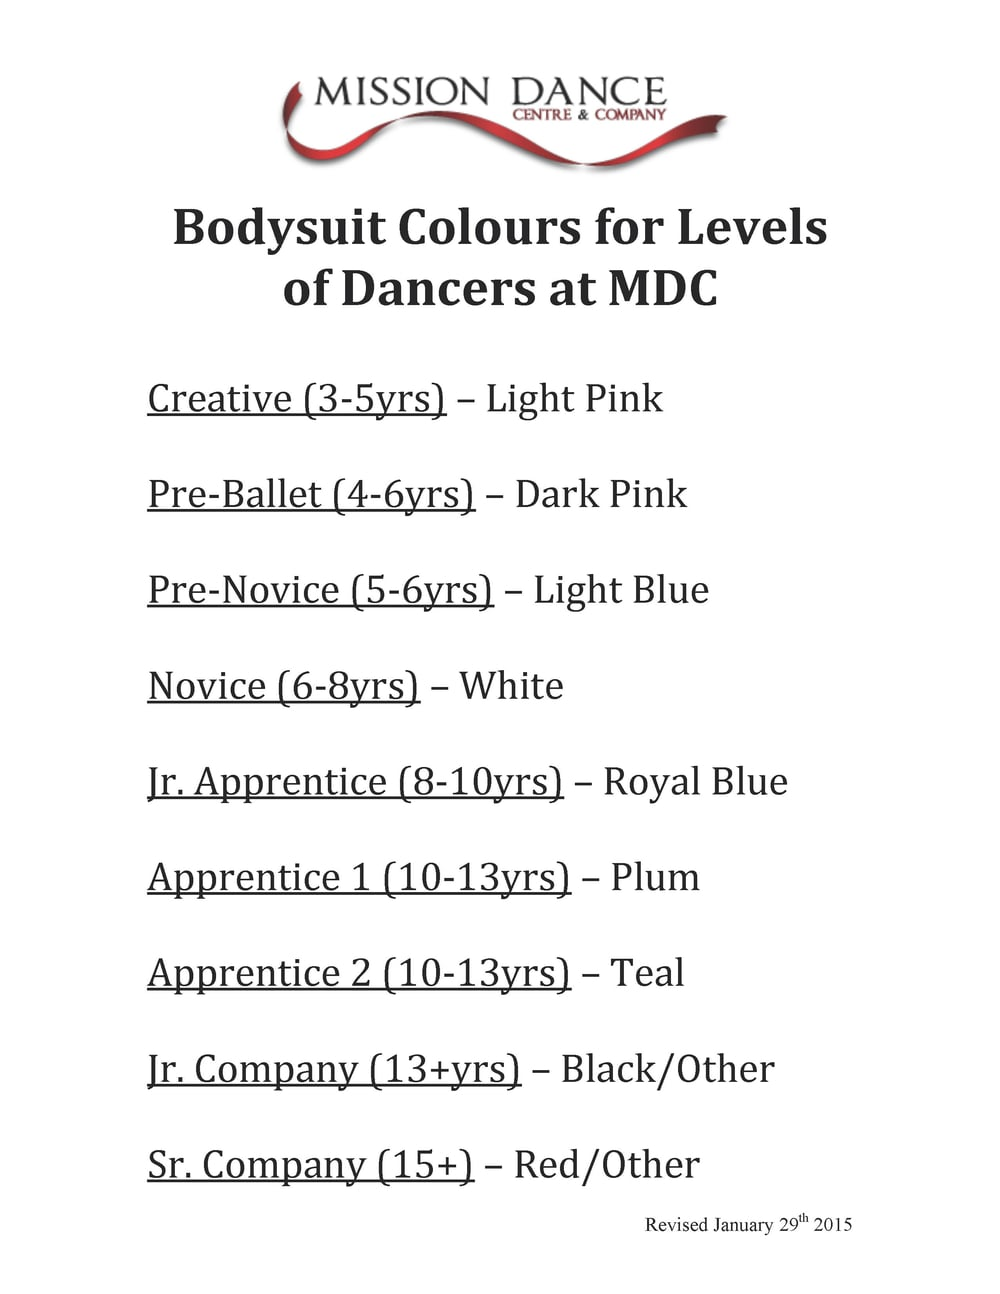 MDC-Bodysuit-Colours-for-Levels-of-Dancers1.jpg